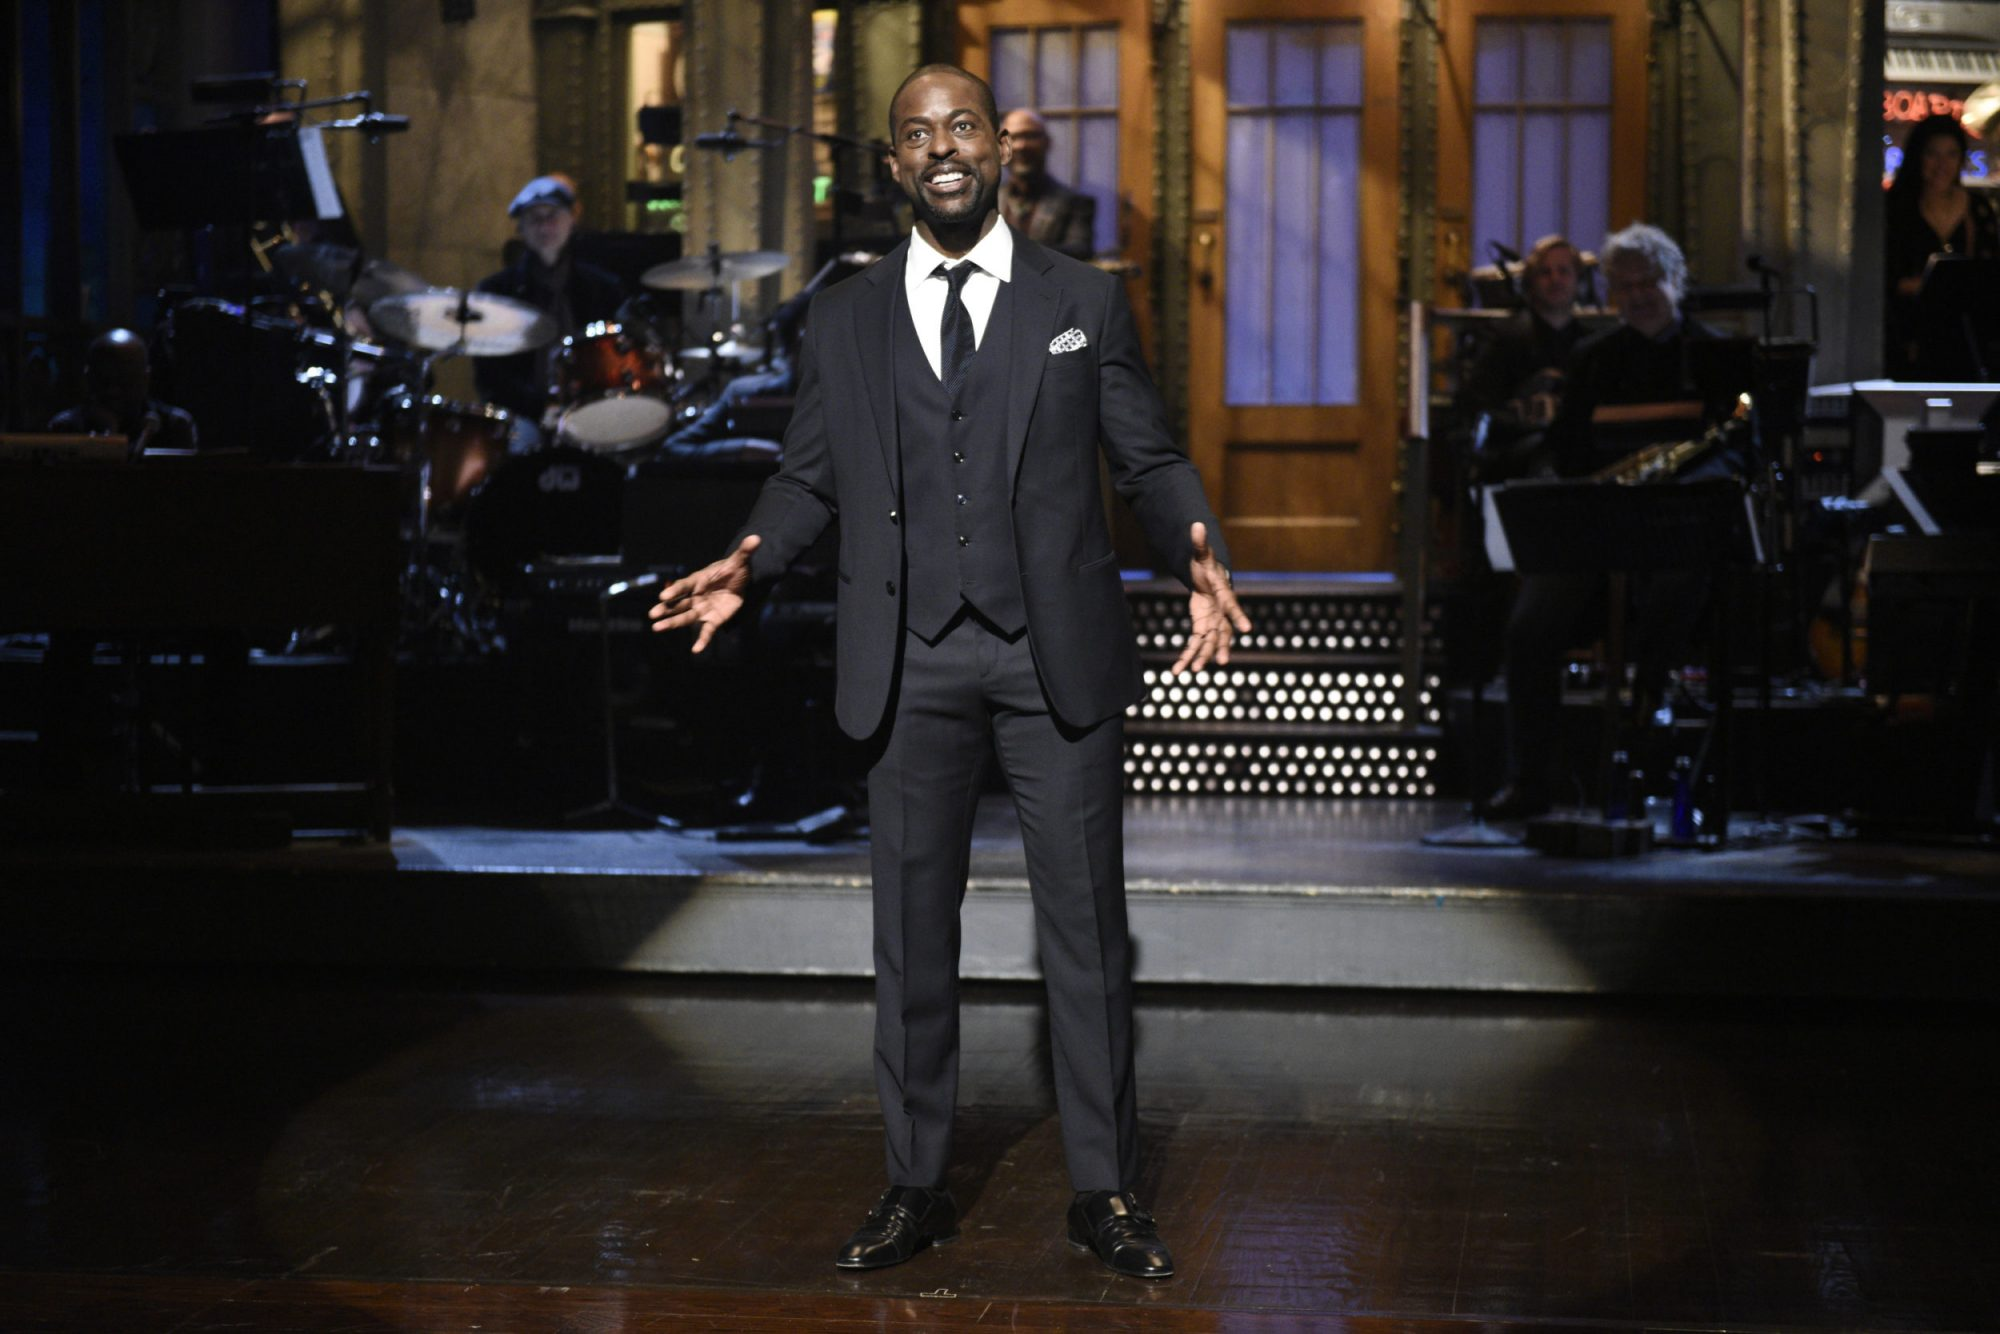 Photo of Sterling K. Brown as Host of Saturday Night Live